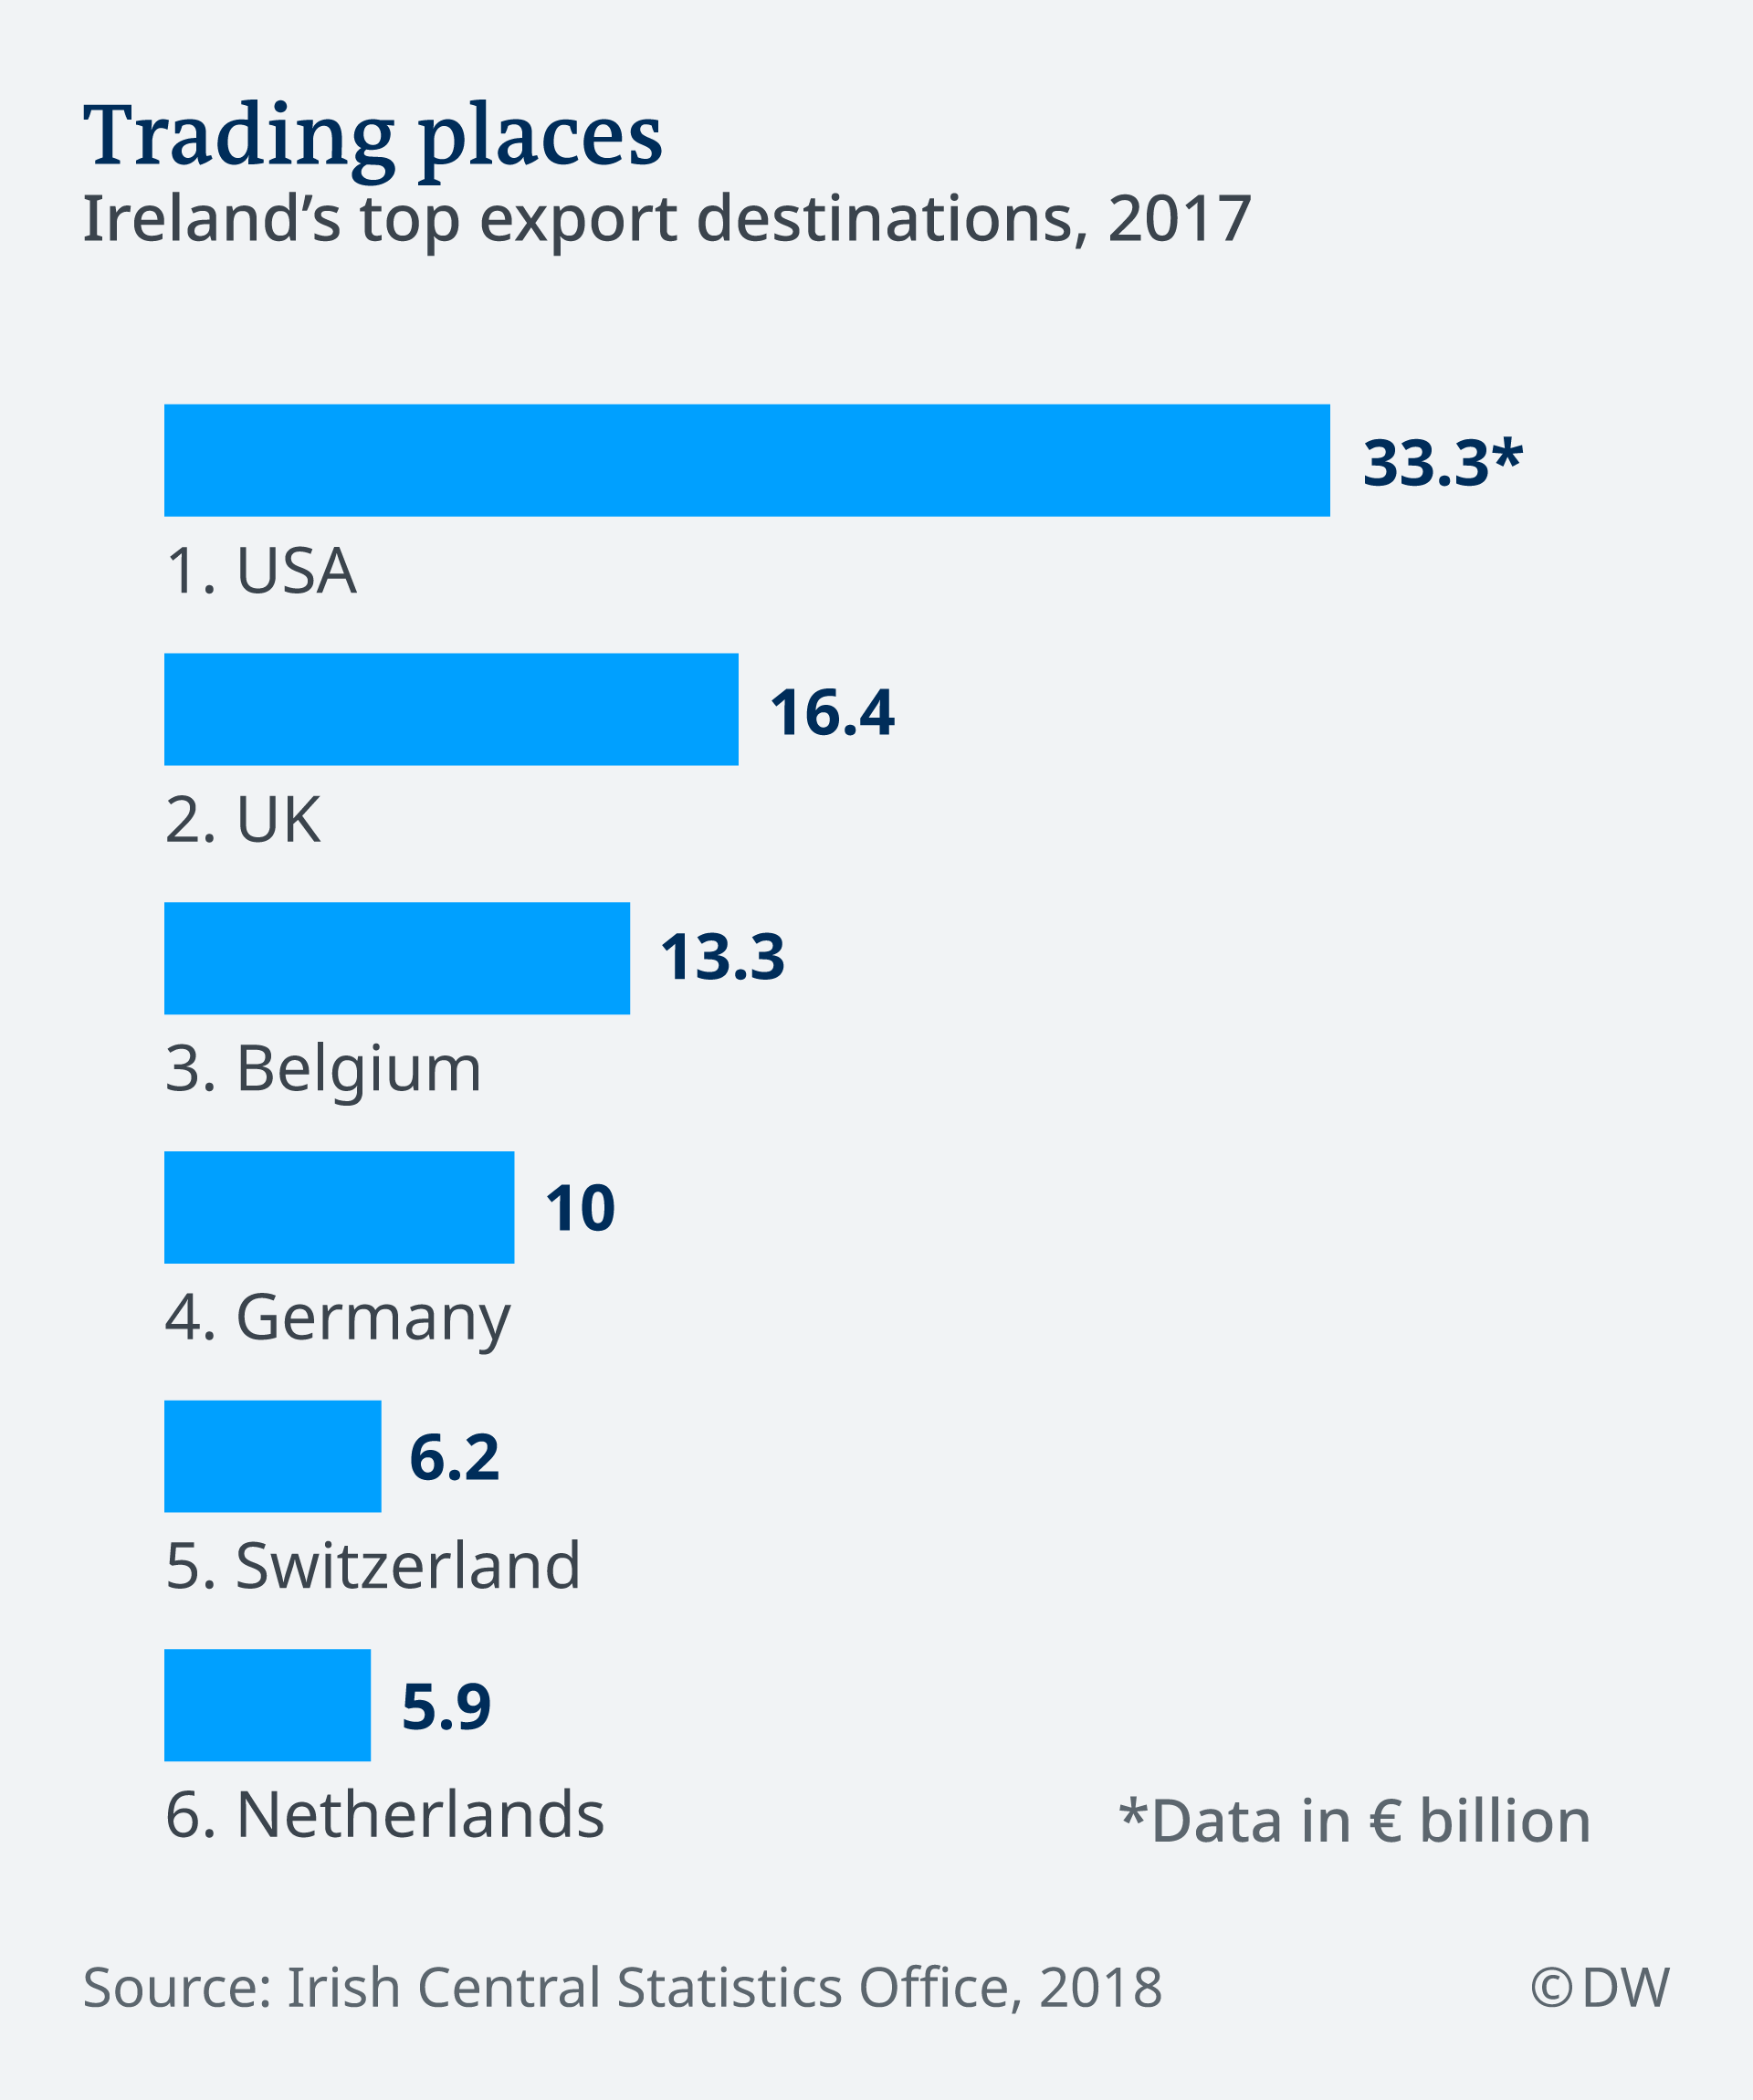 Ireland's top export destinations in 2017